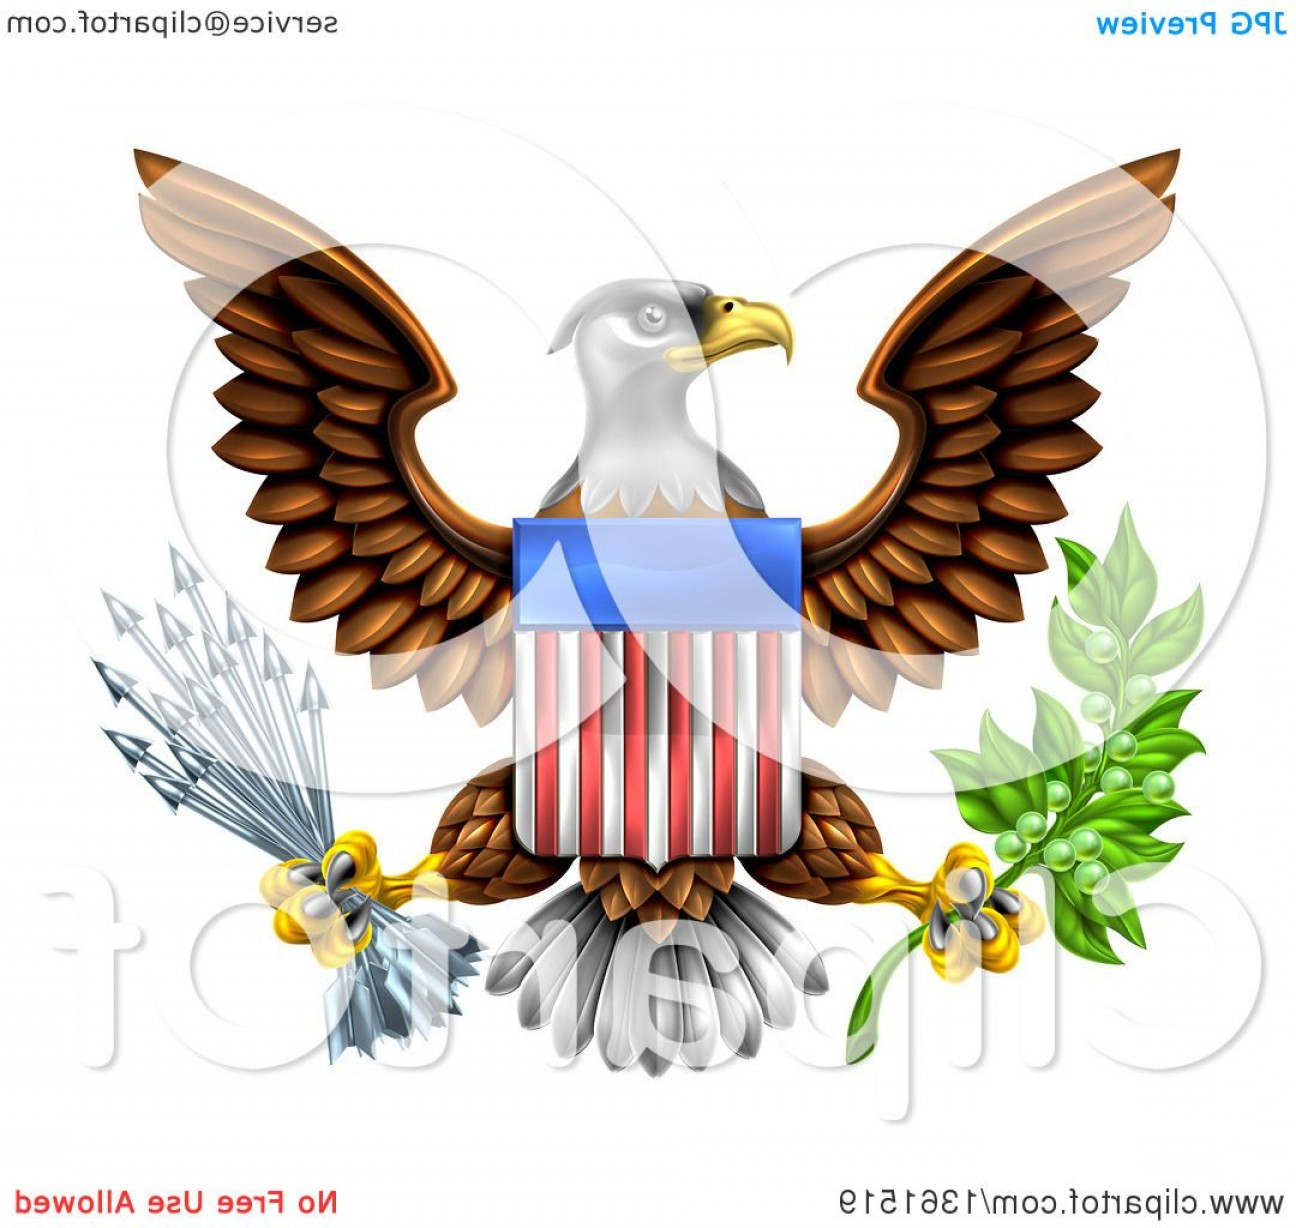 Patriotic Bald Eagle Vector: The Great Seal Of The United States Bald Eagle With An American Flag Shield Holding An Olive Branch And Silver Arrows